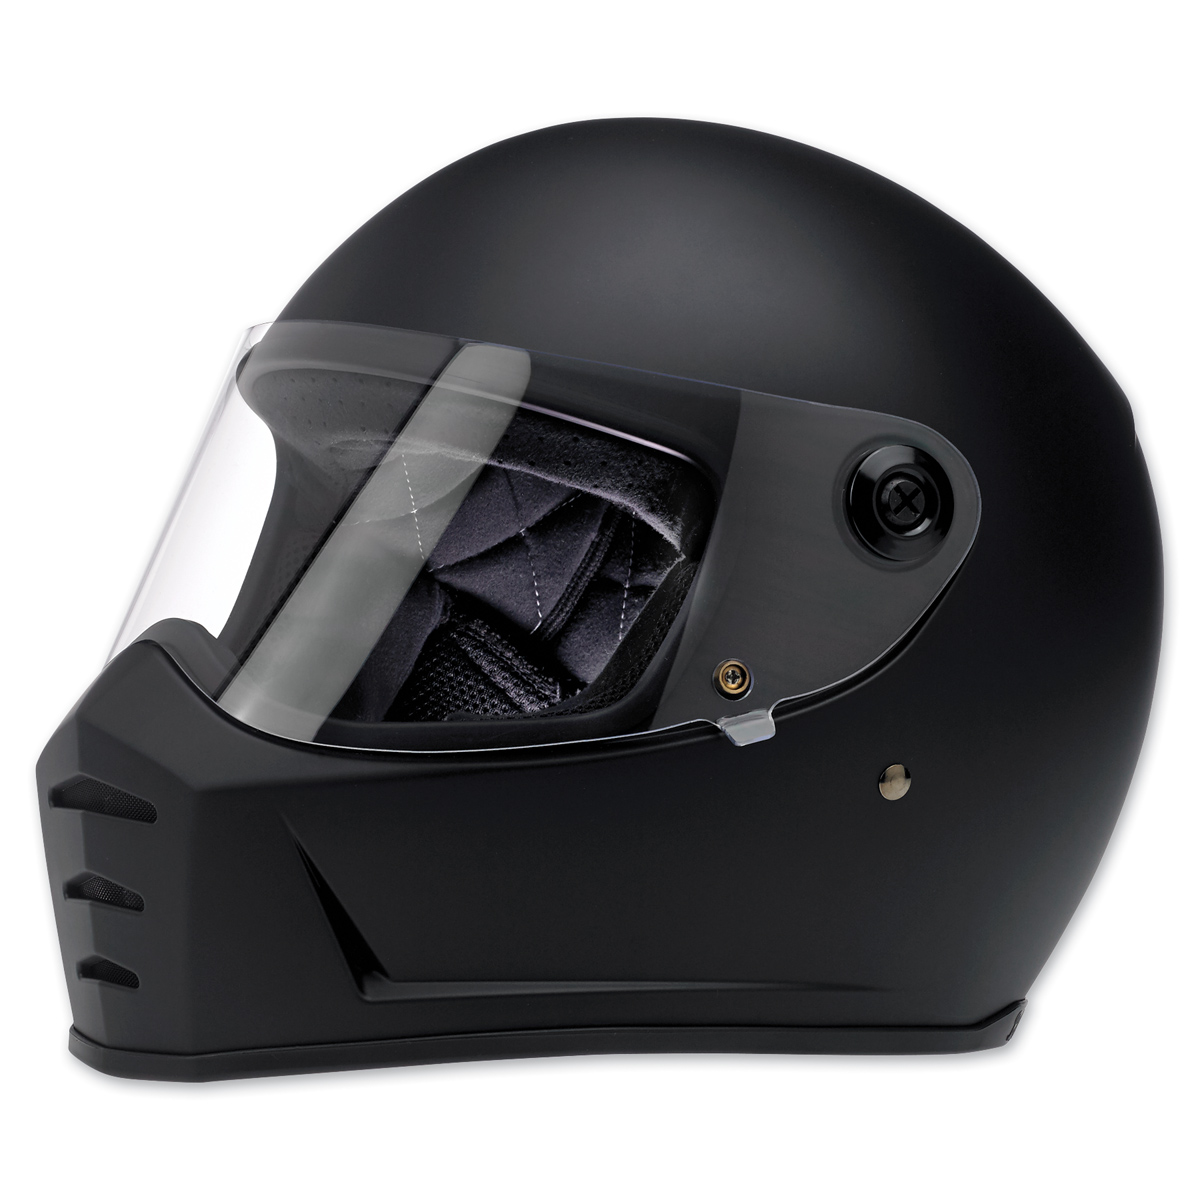 Bell custom 500 gloss black vintage low profile helmet chopper harley - Biltwell Inc Lane Splitter Flat Black Full Face Helmet